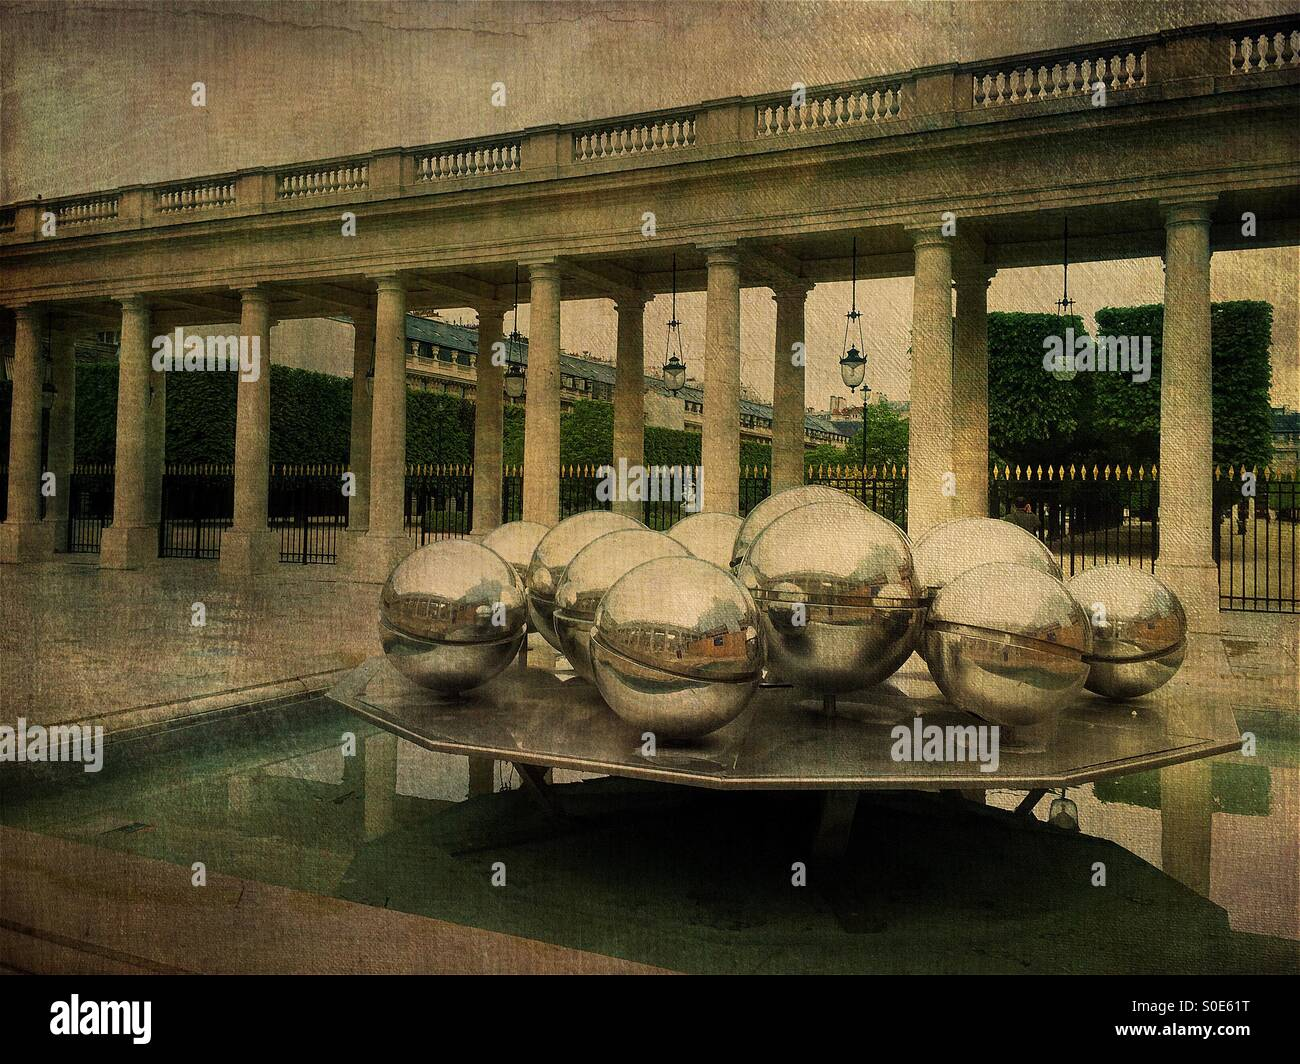 View of Fontaines installation by Pol Bury at the Orleans Gallery of Place du Palais-Royal in Paris, France. The Stock Photo